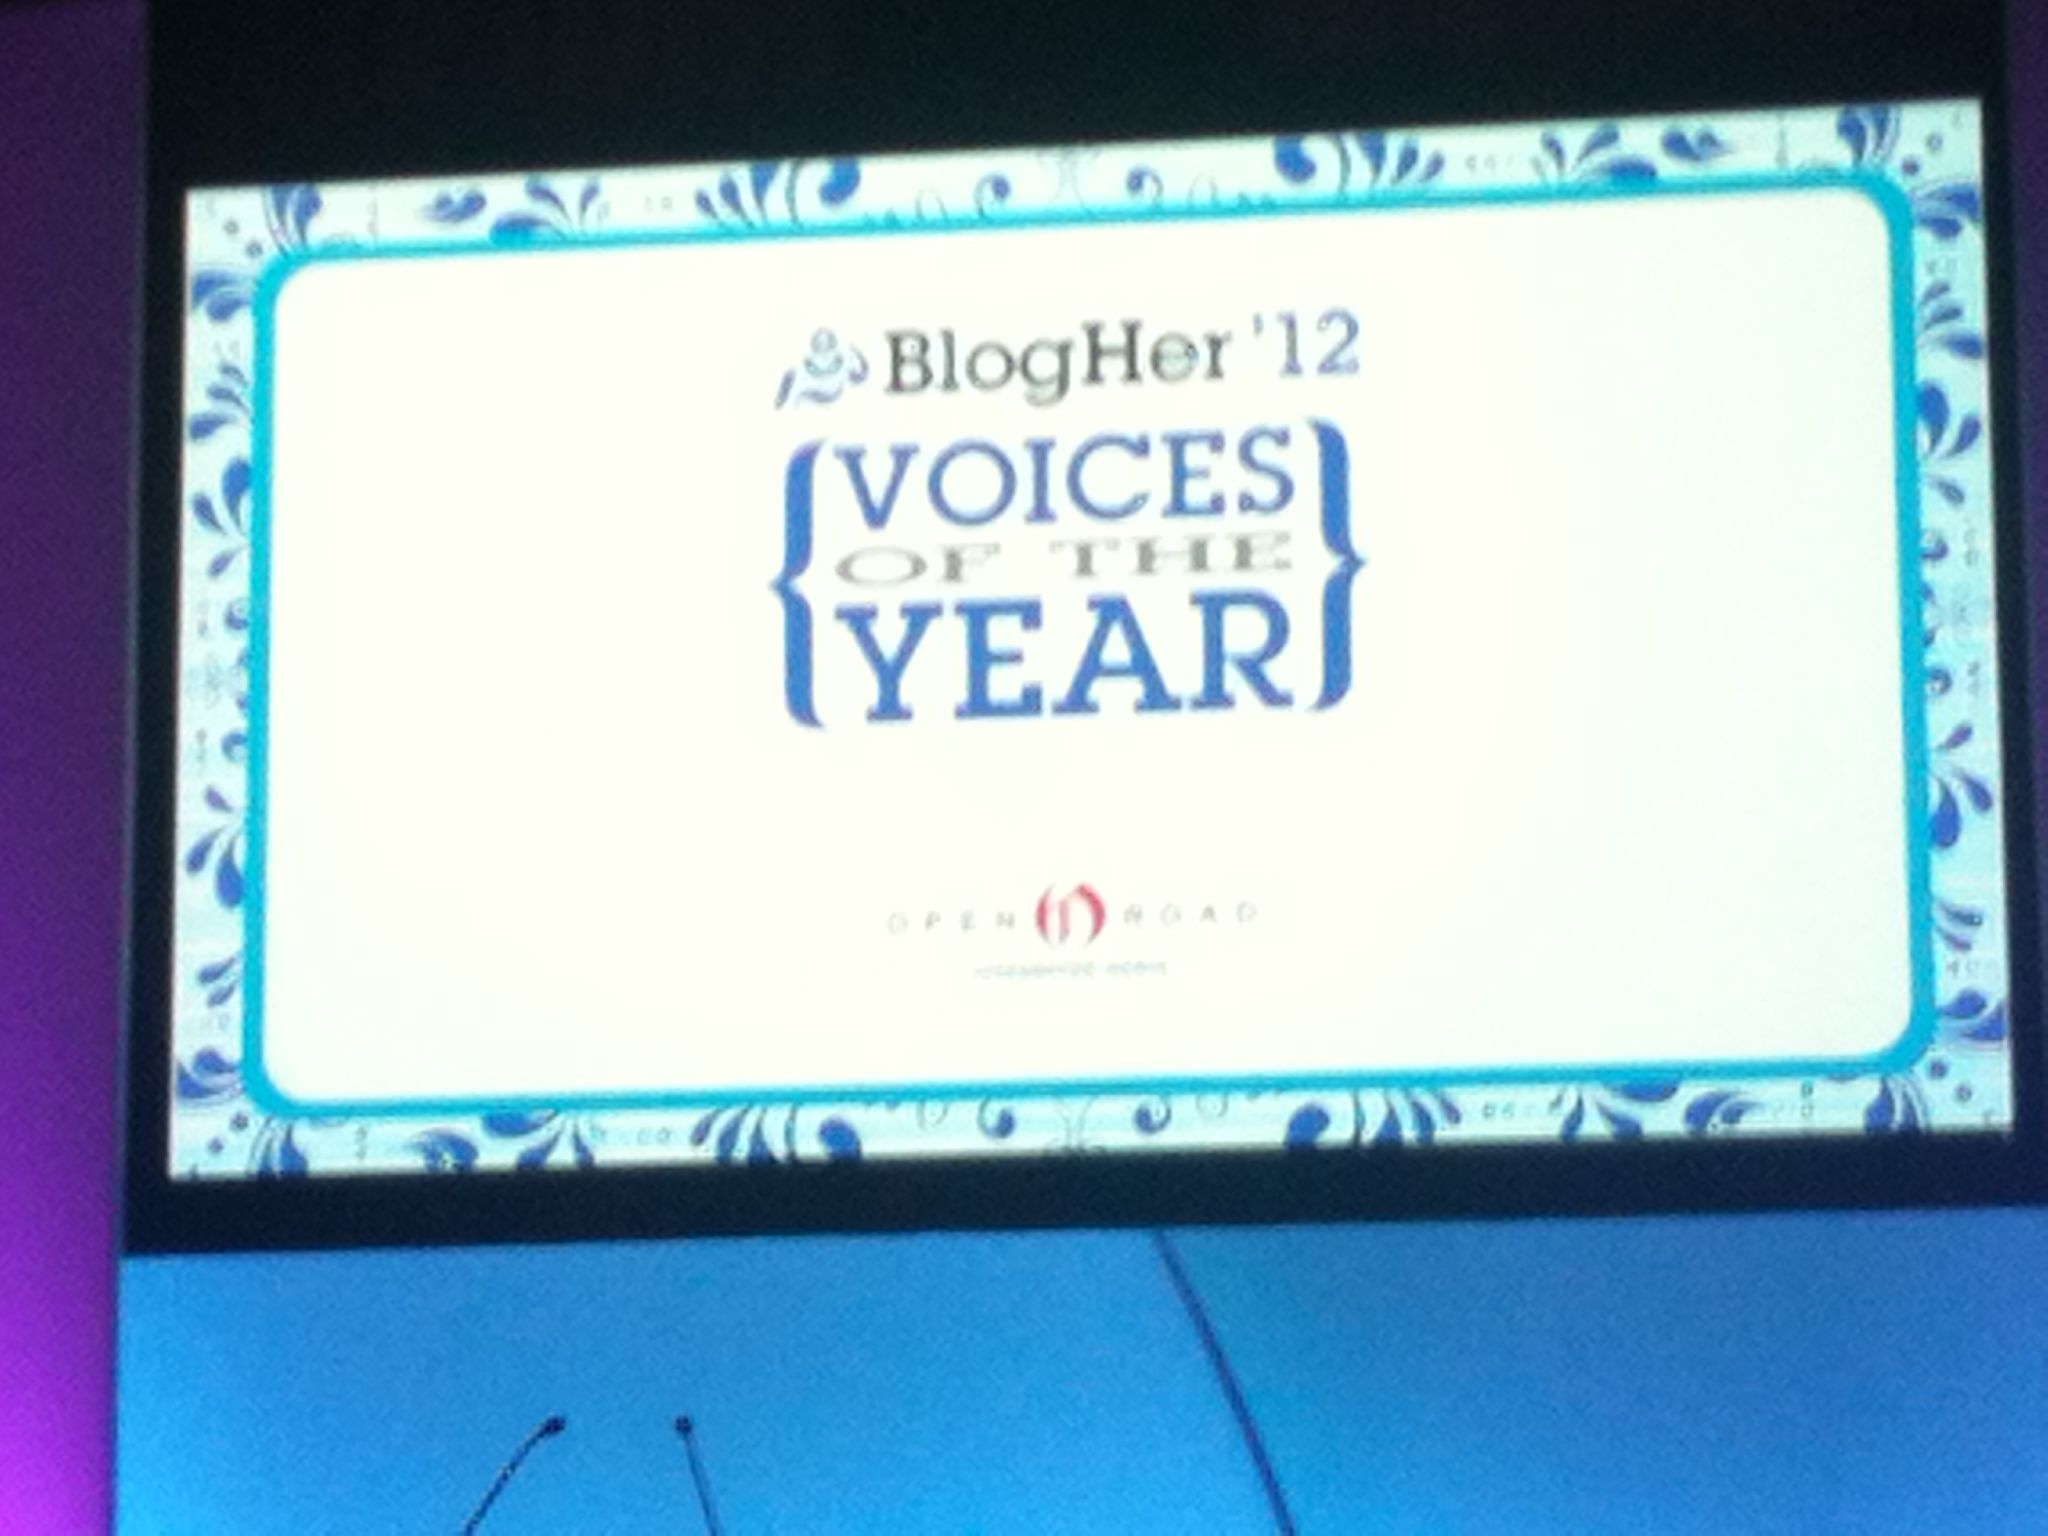 BlogHer12: A recap from my perspective.